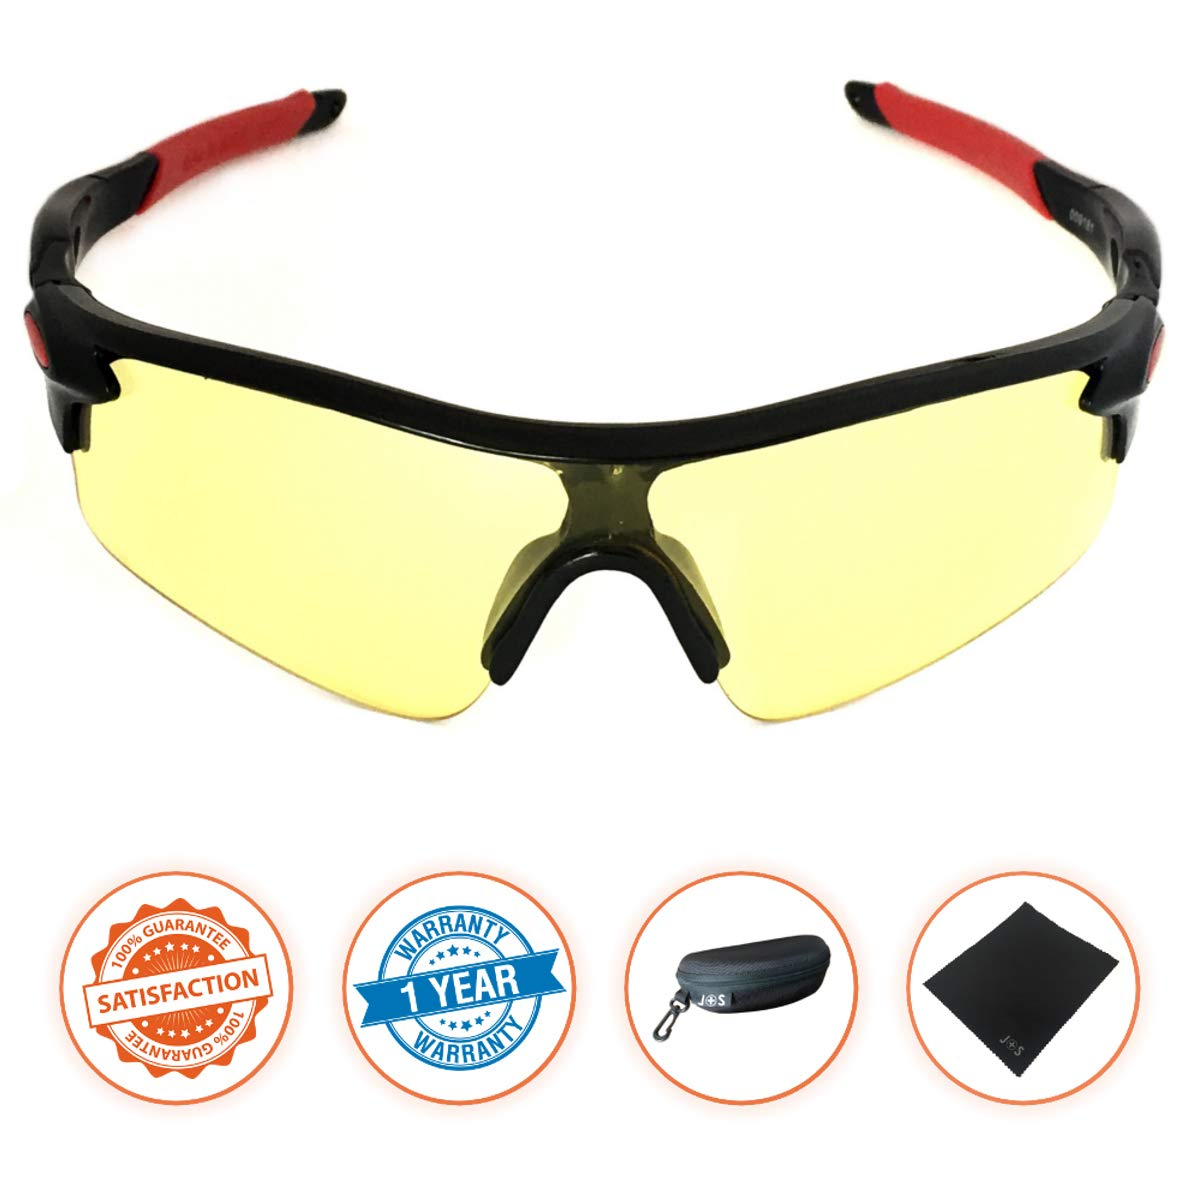 J+S Active PLUS Cycling Outdoor Sports Athlete's Sunglasses, 100% UV protection (Black Frame/Yellow Lens)